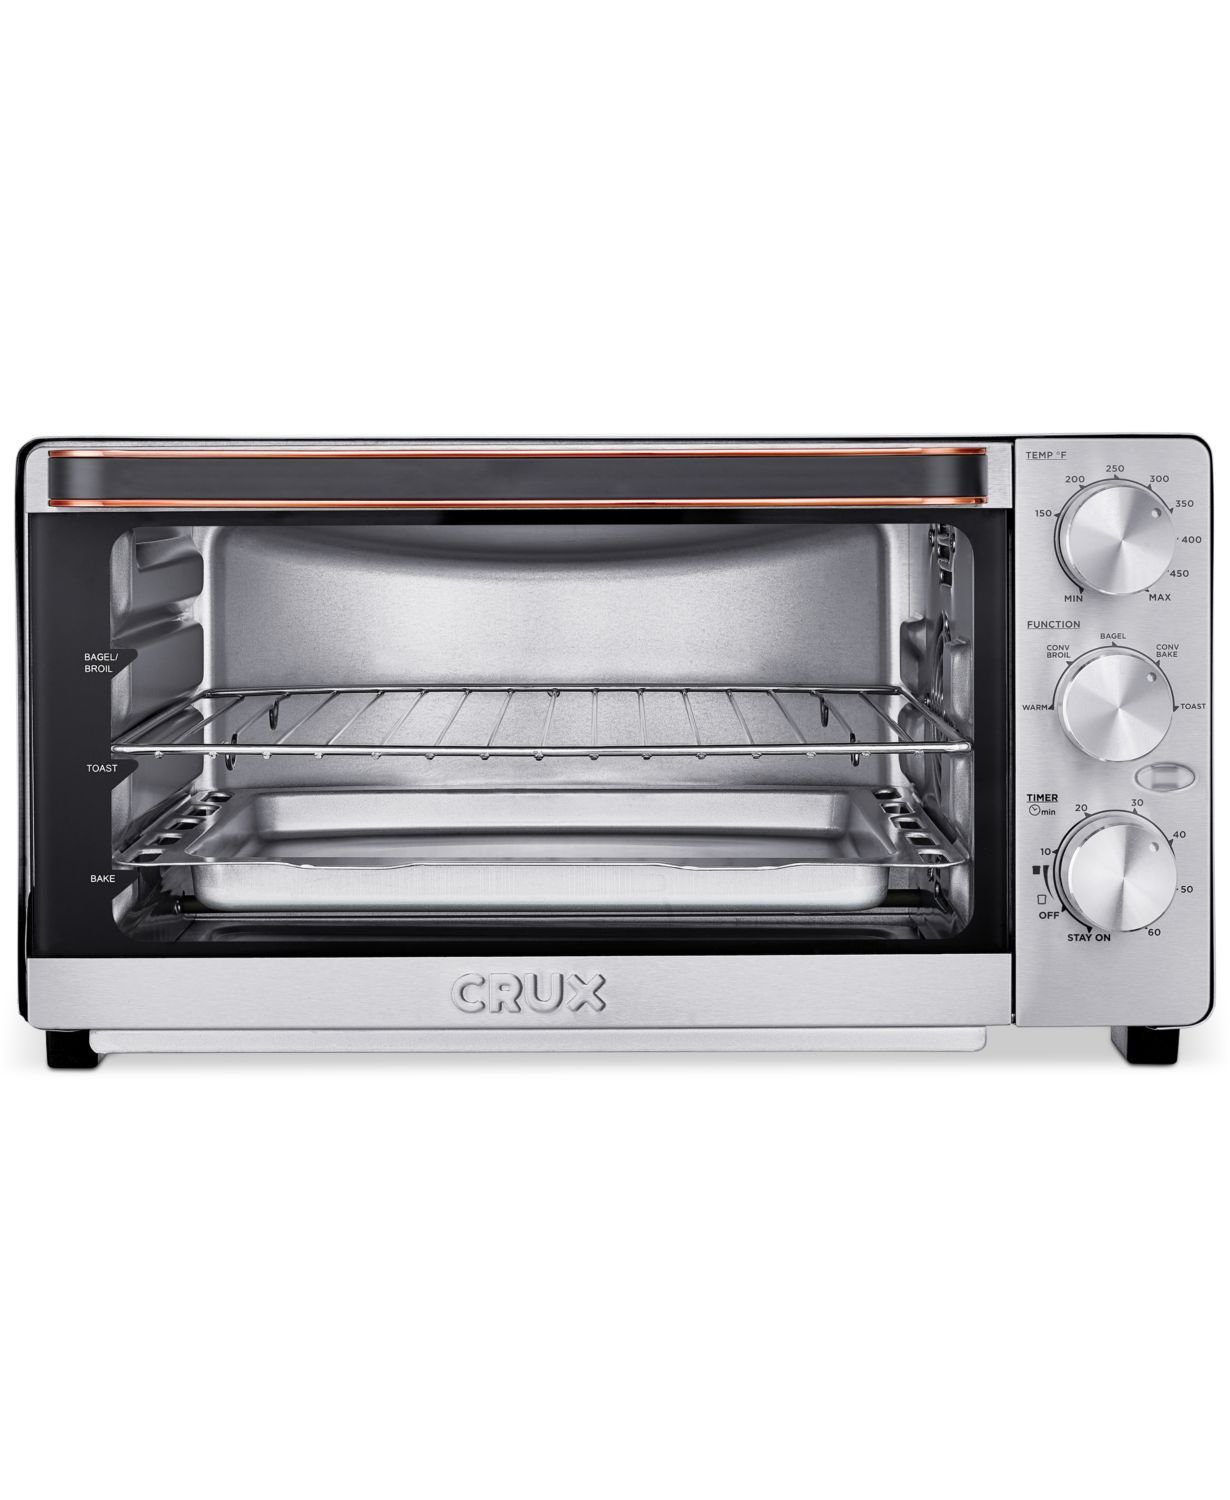 10 Best Toaster Ovens 2019 - Countertop and Convection Toaster Oven